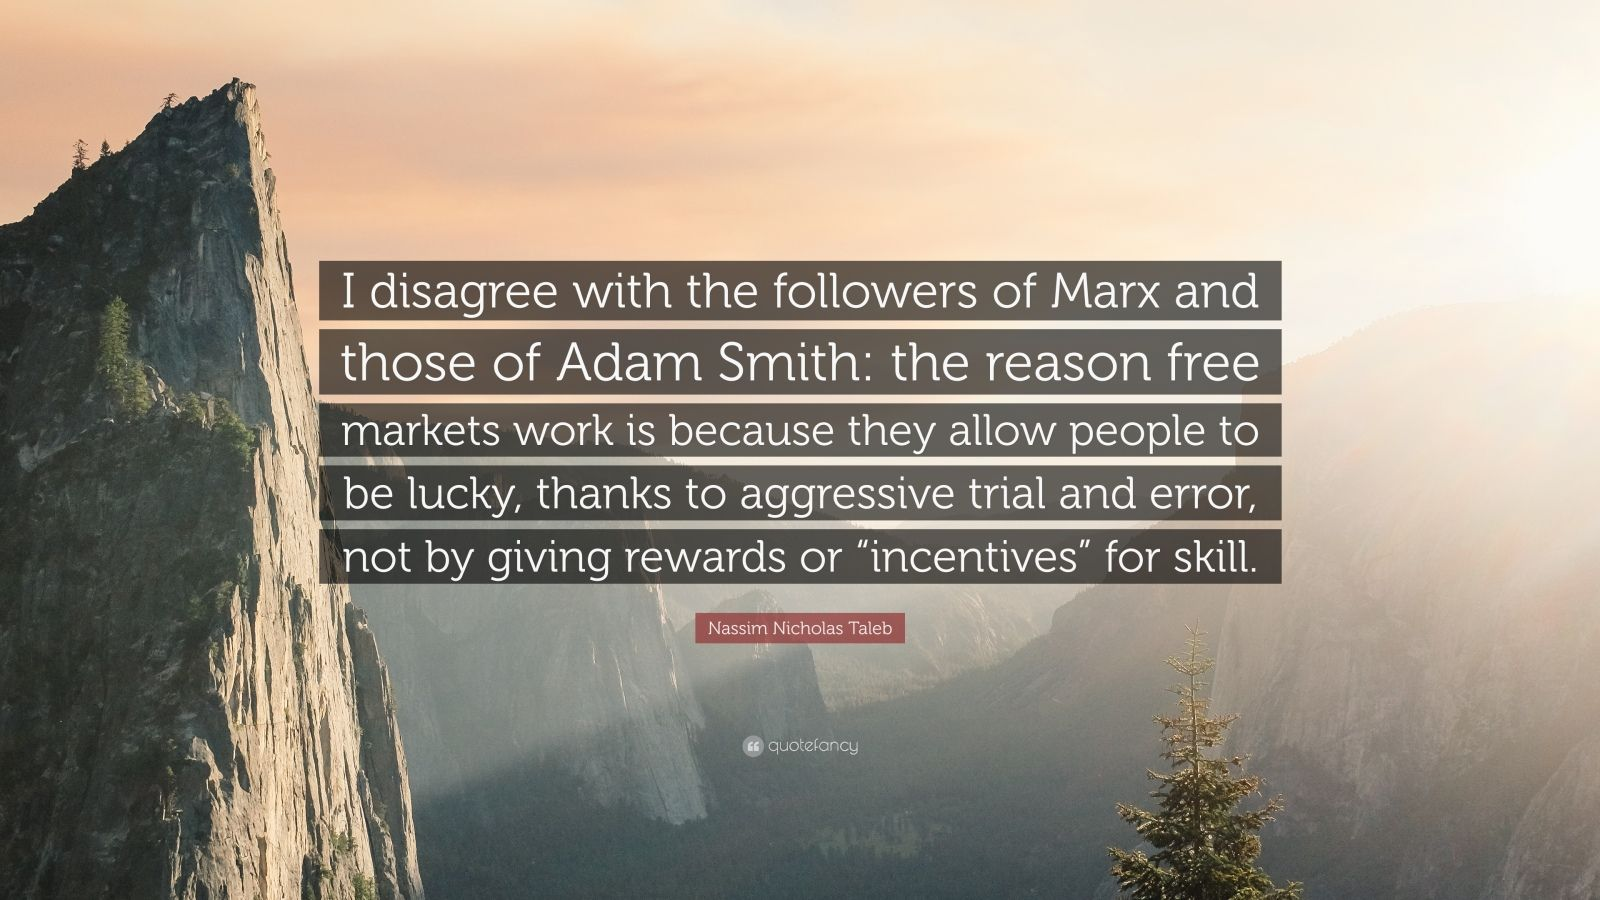 """Nassim Nicholas Taleb Quote: """"I disagree with the followers of Marx and those of Adam Smith: the reason free markets work is because they allow people to be lucky, thanks to aggressive trial and error, not by giving rewards or """"incentives"""" for skill."""""""